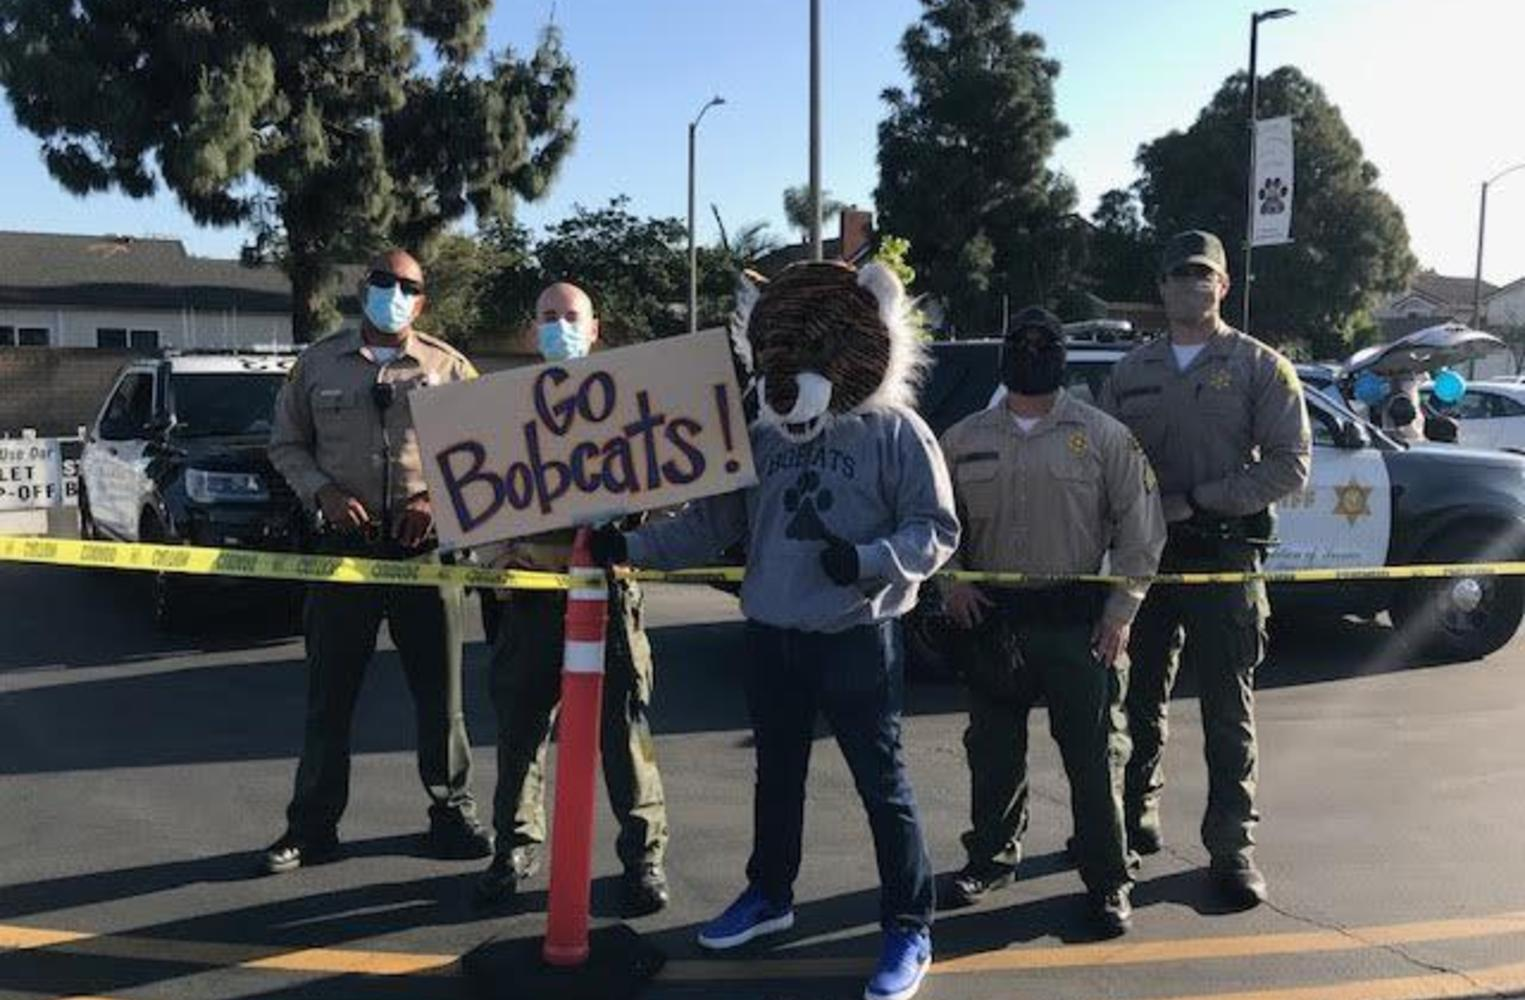 Man in bobcat costume with Sheriffs